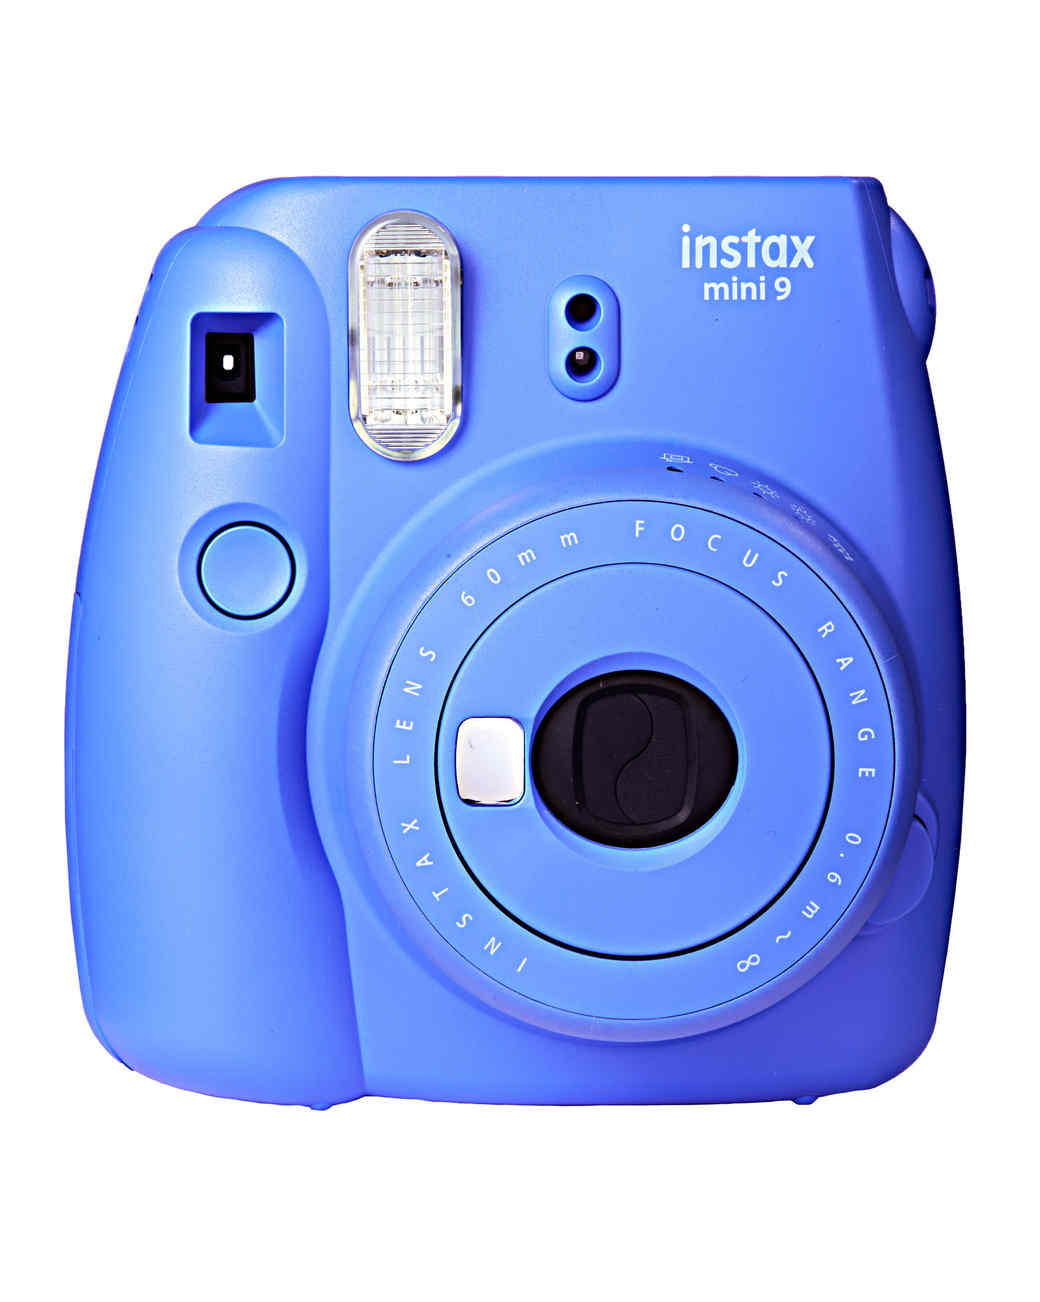 fujifilms-instax-mini-9-camera-msl1217-103139882